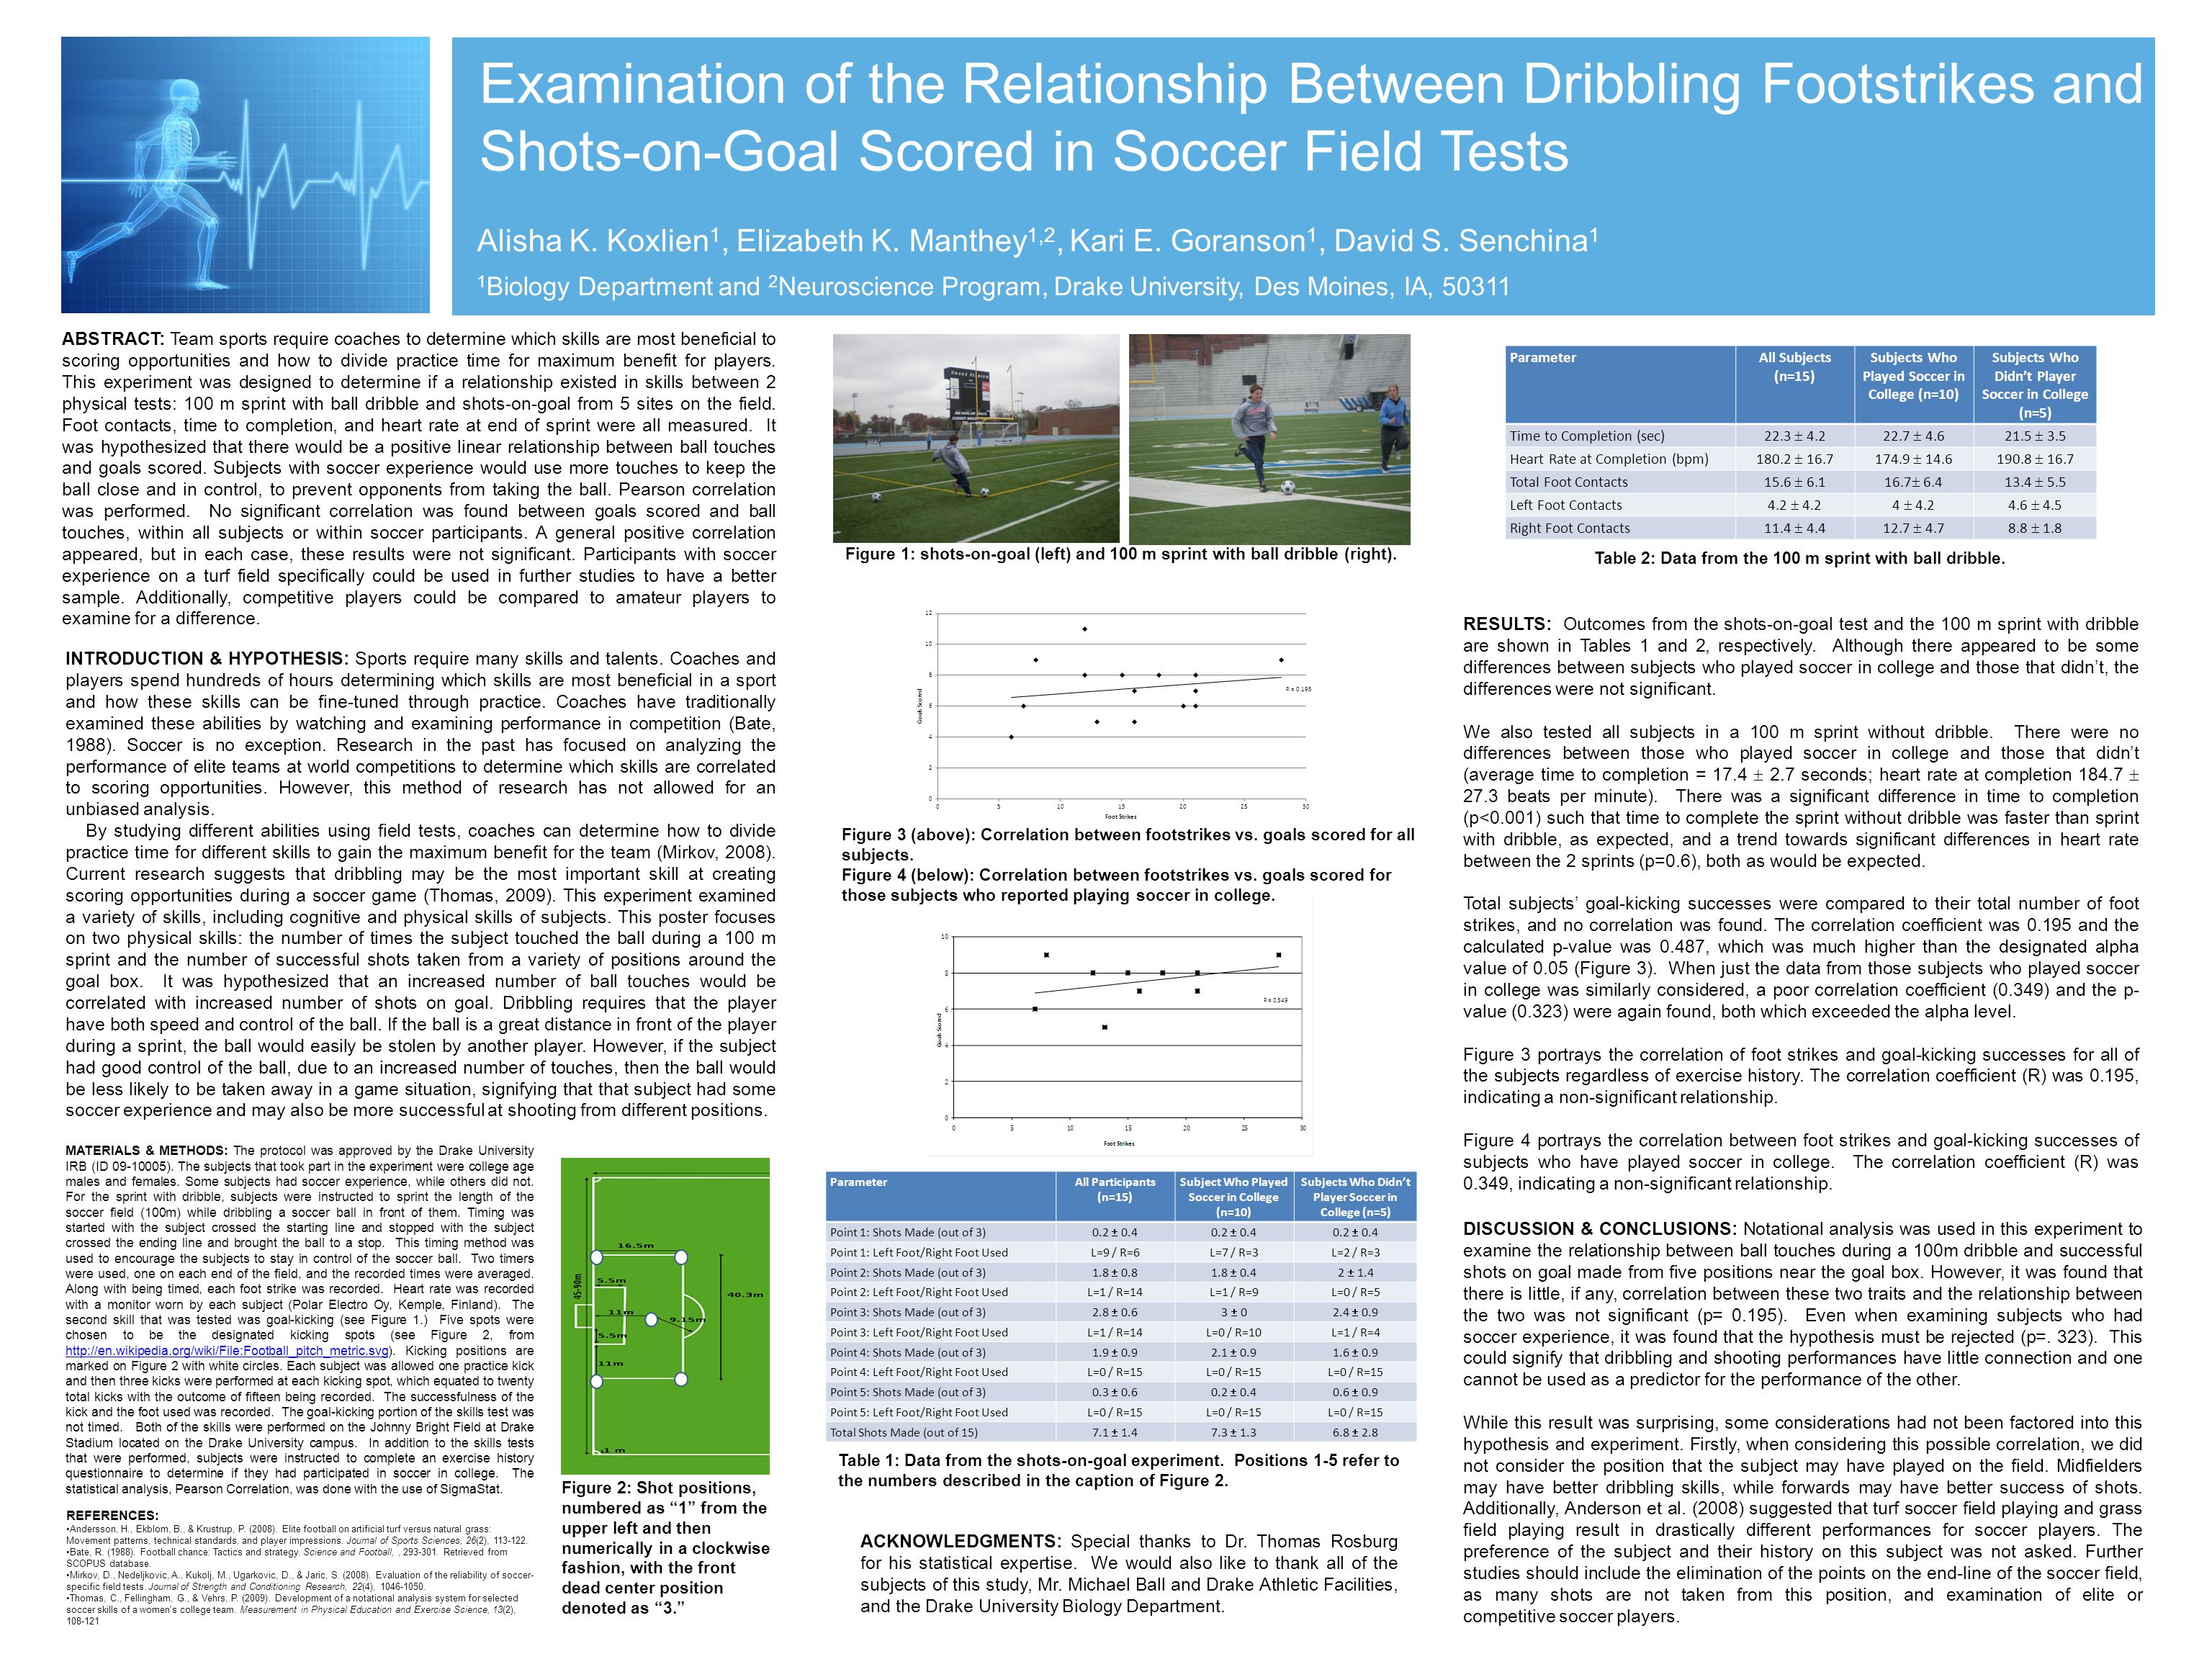 Examination of the Relationship Between Dribbling Footstrikes and Shots-on-Goal Scored in Soccer Field Tests